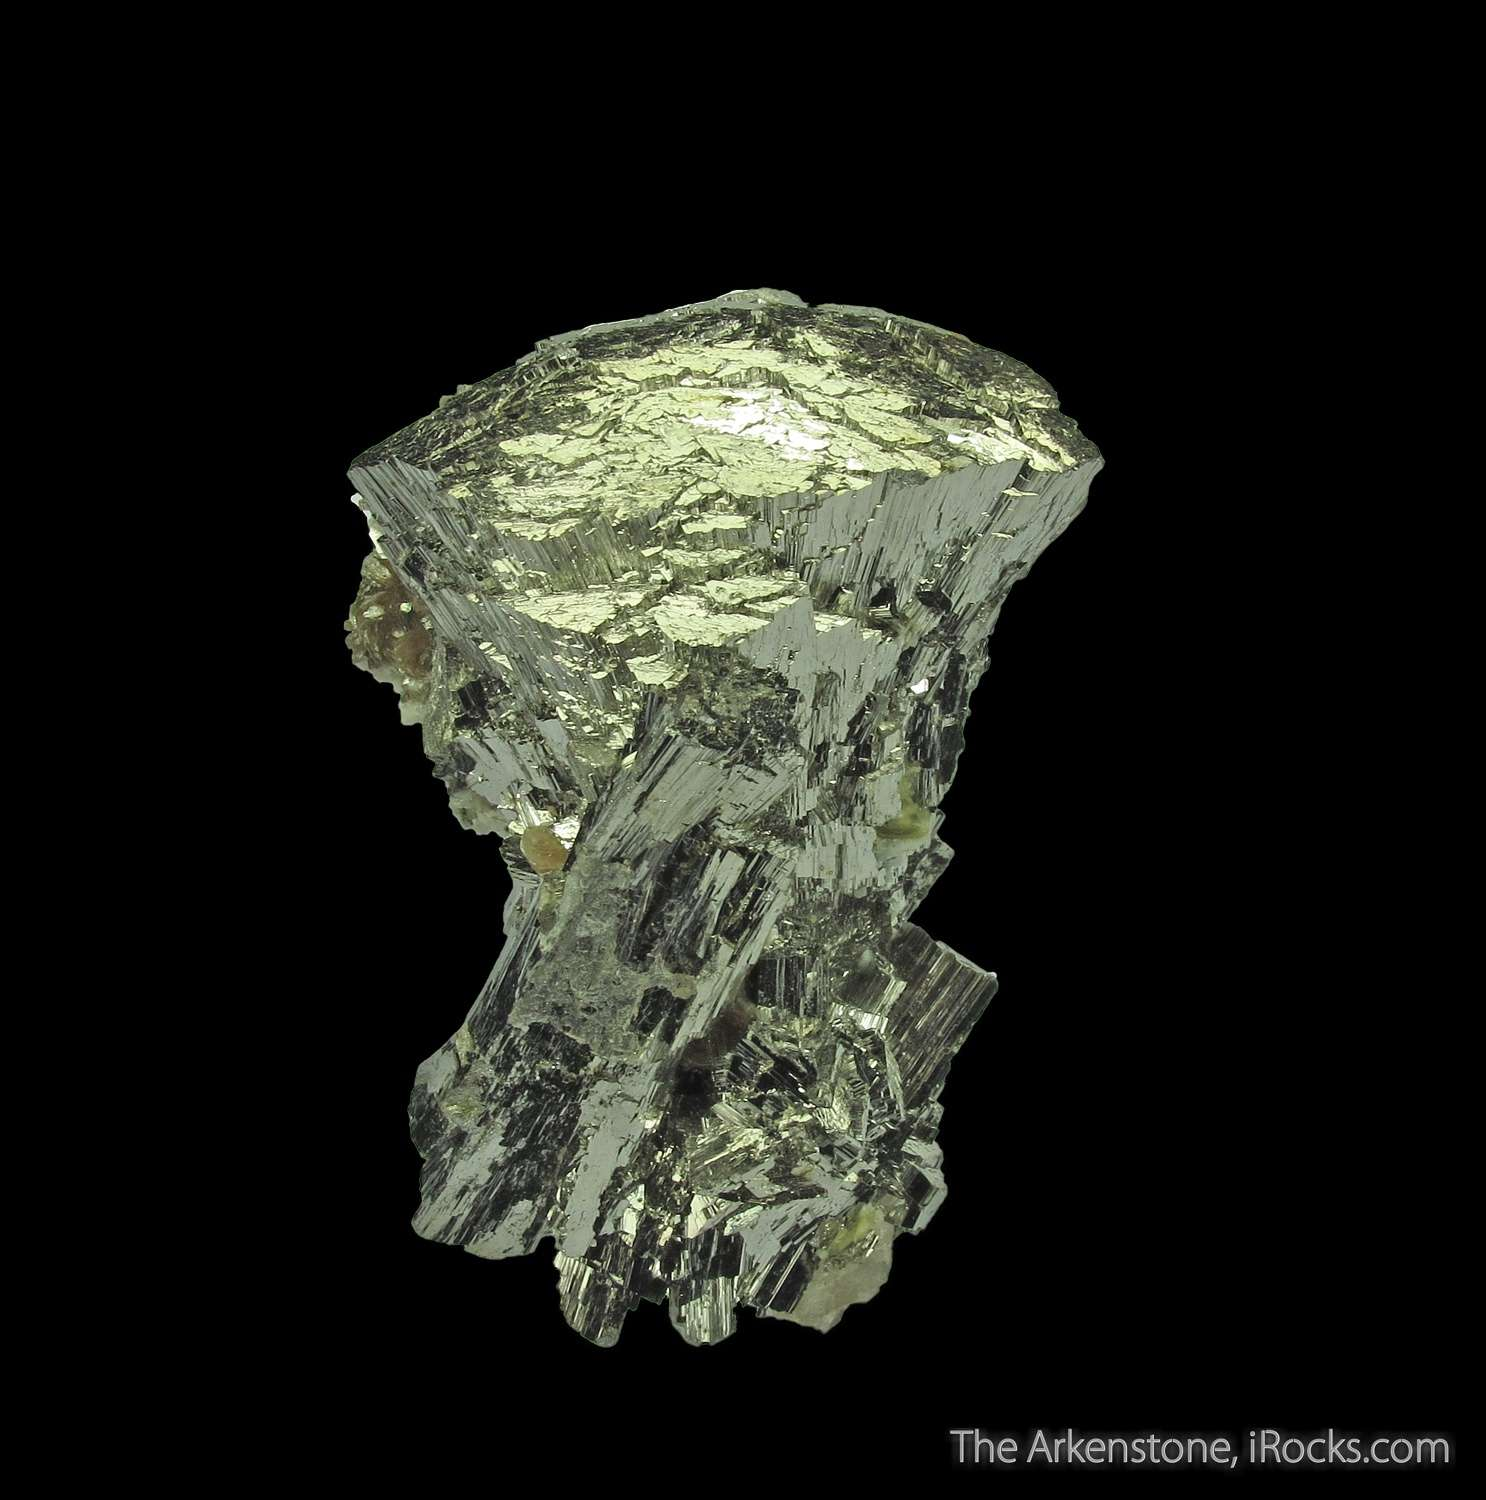 This Arsenopyrite simply stunning miniature leaps superb form